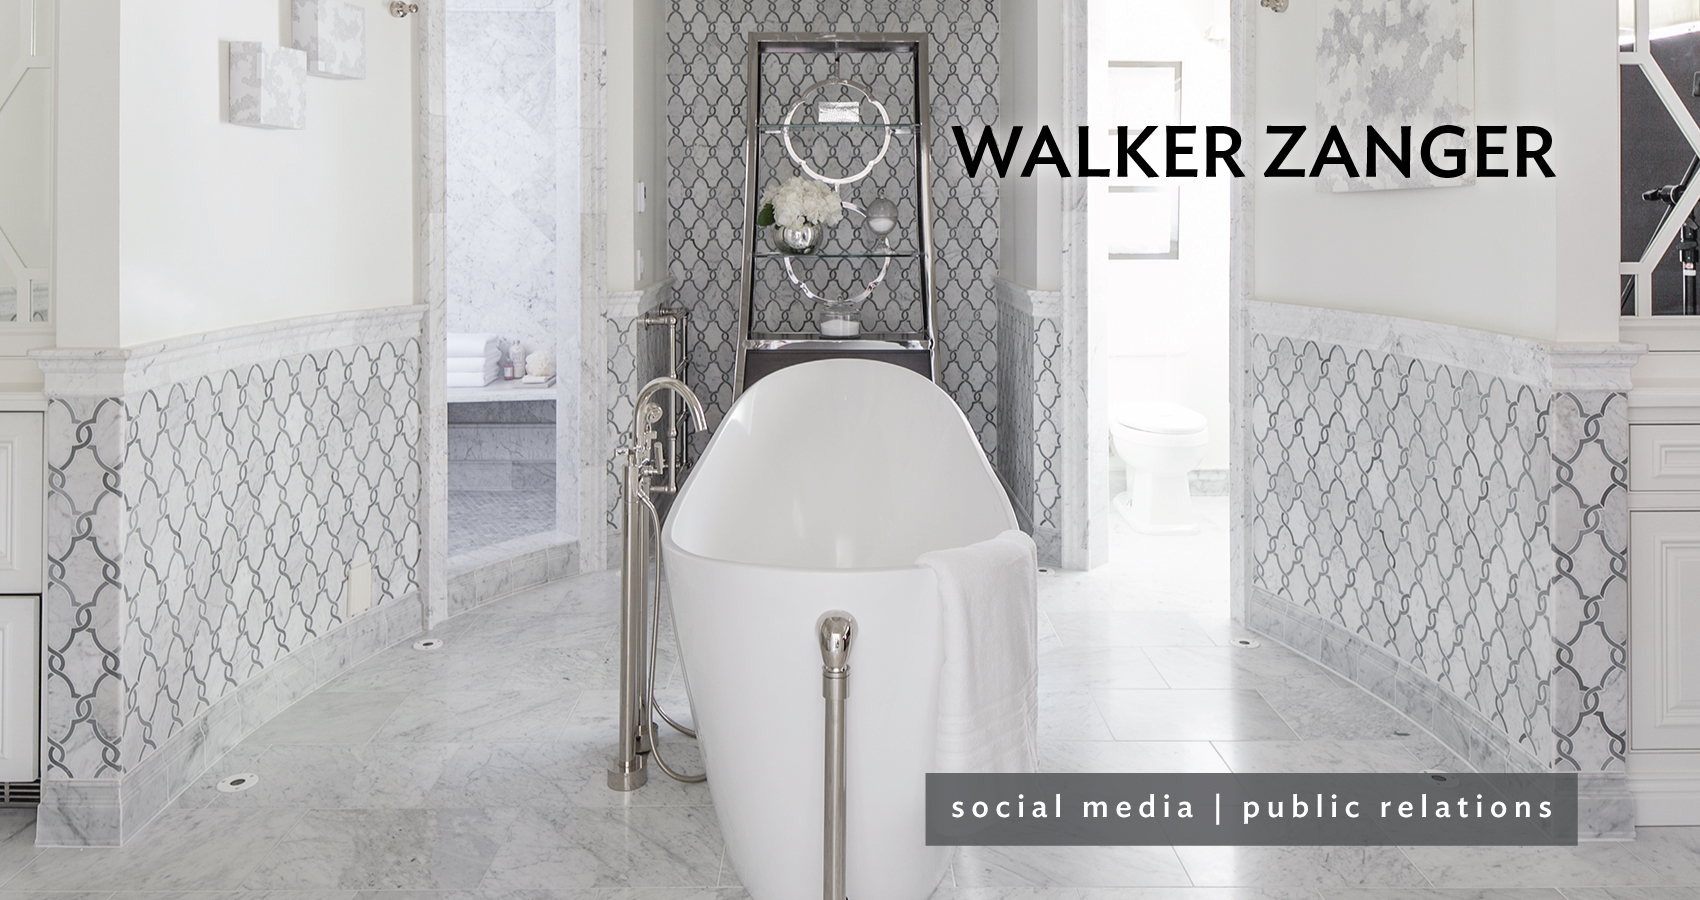 Flooring awesome stone and tile by walker zanger for wall decor chic bathup on walker zanger tile floor matched with white wall and wainscoting for bathroom decor dailygadgetfo Choice Image